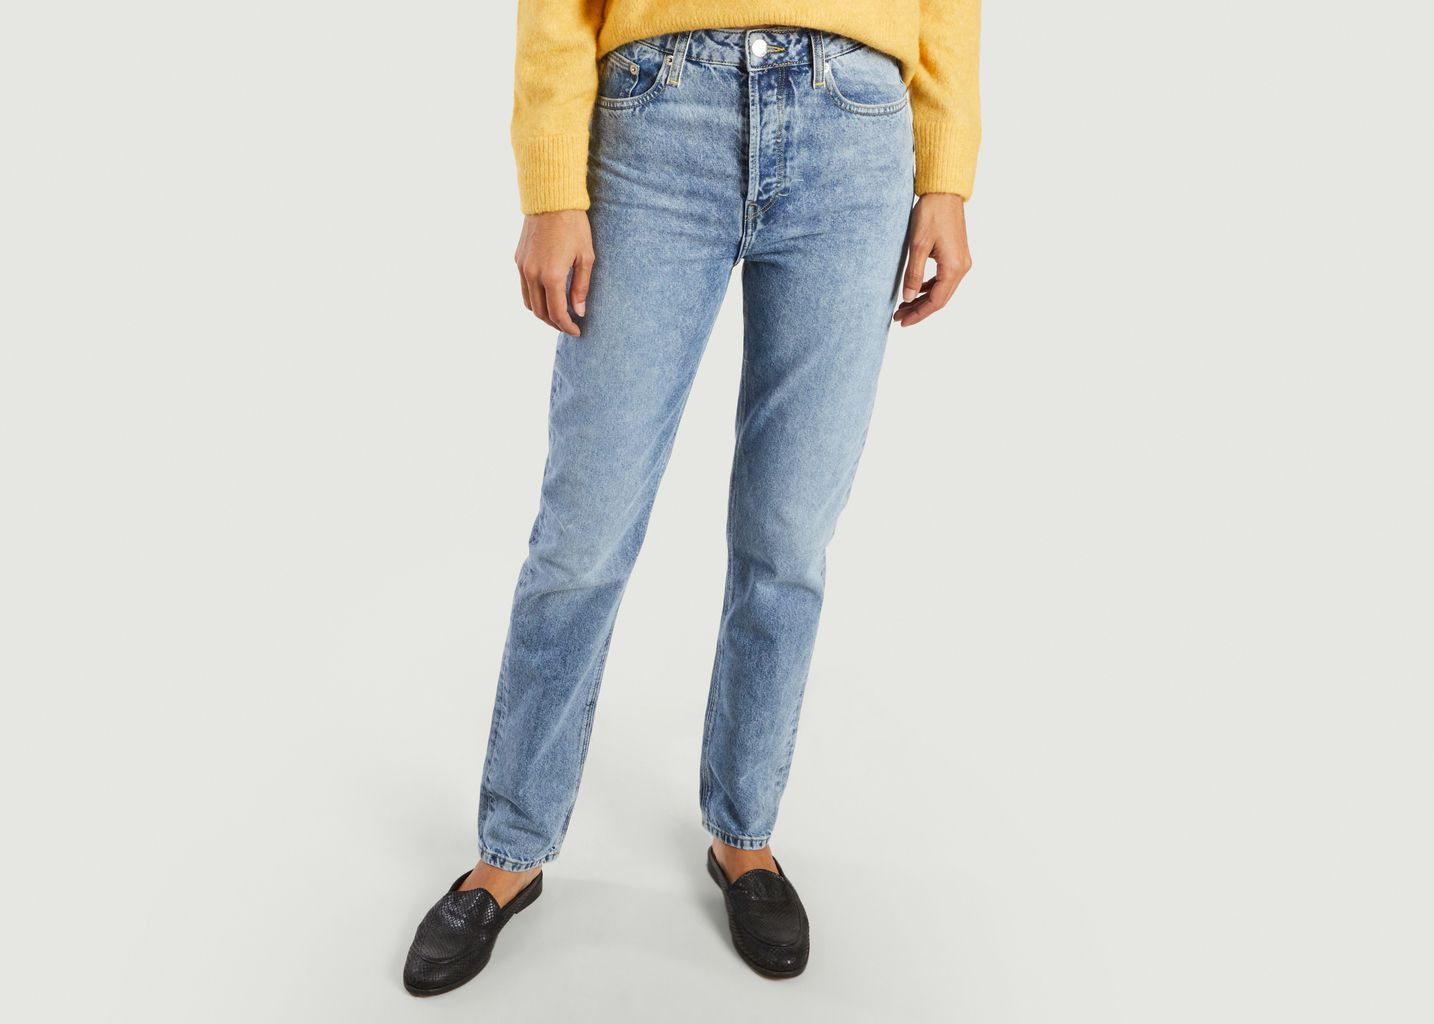 Jeans Piper - Mud Jeans